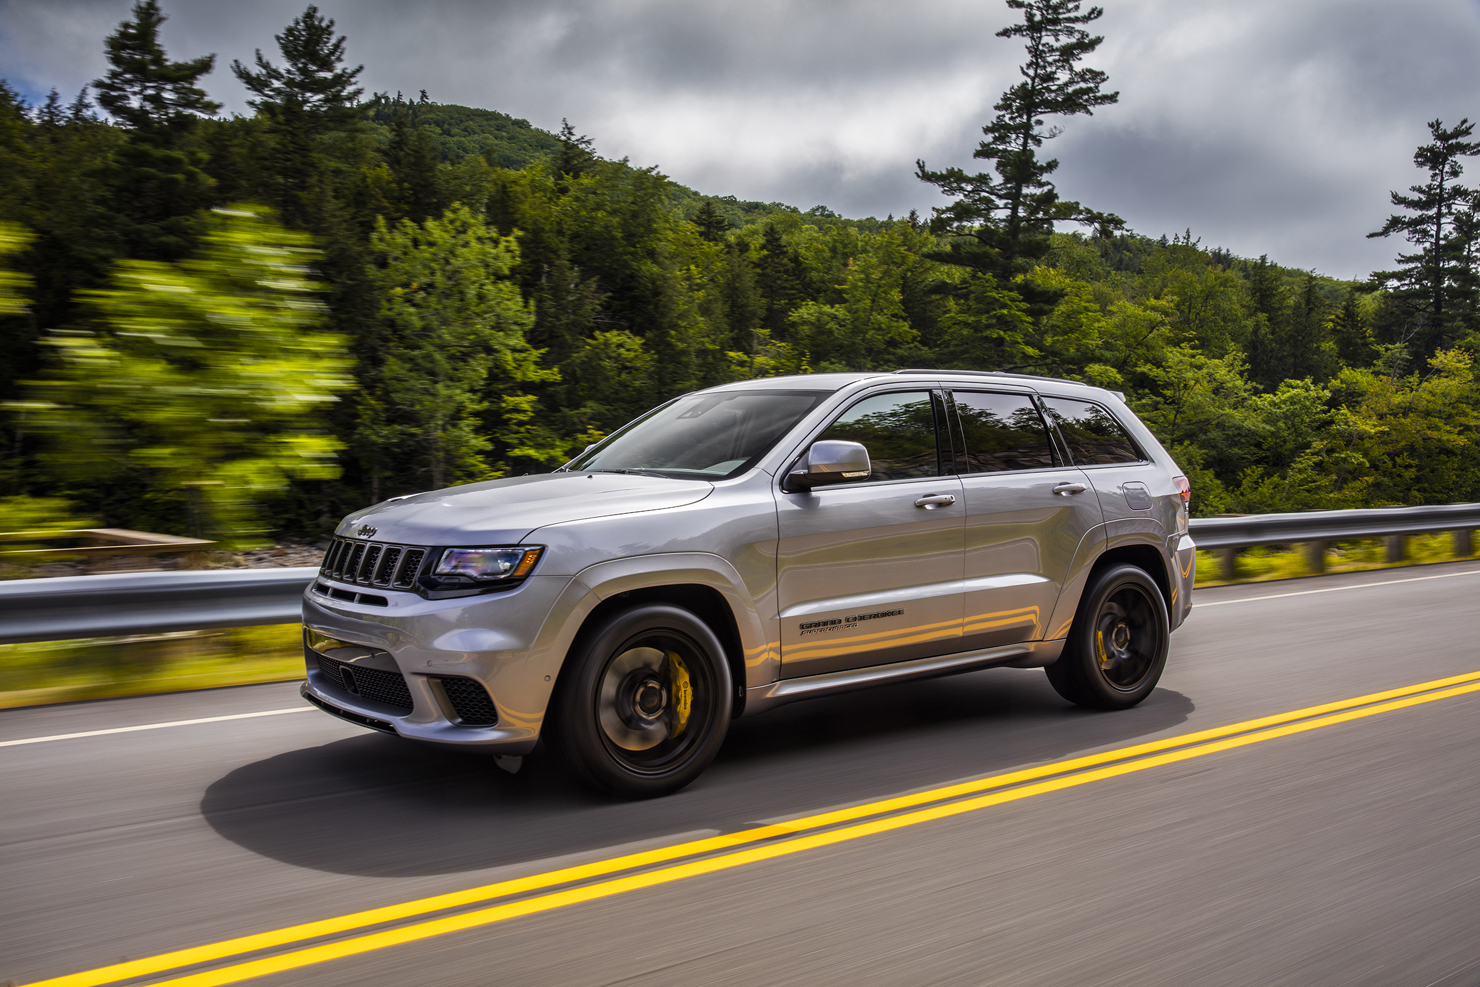 """It's """"Bring Your SUV To Track"""" Day: 2018 Jeep Grand Cherokee Trackhawk - Zero To 60 Times"""